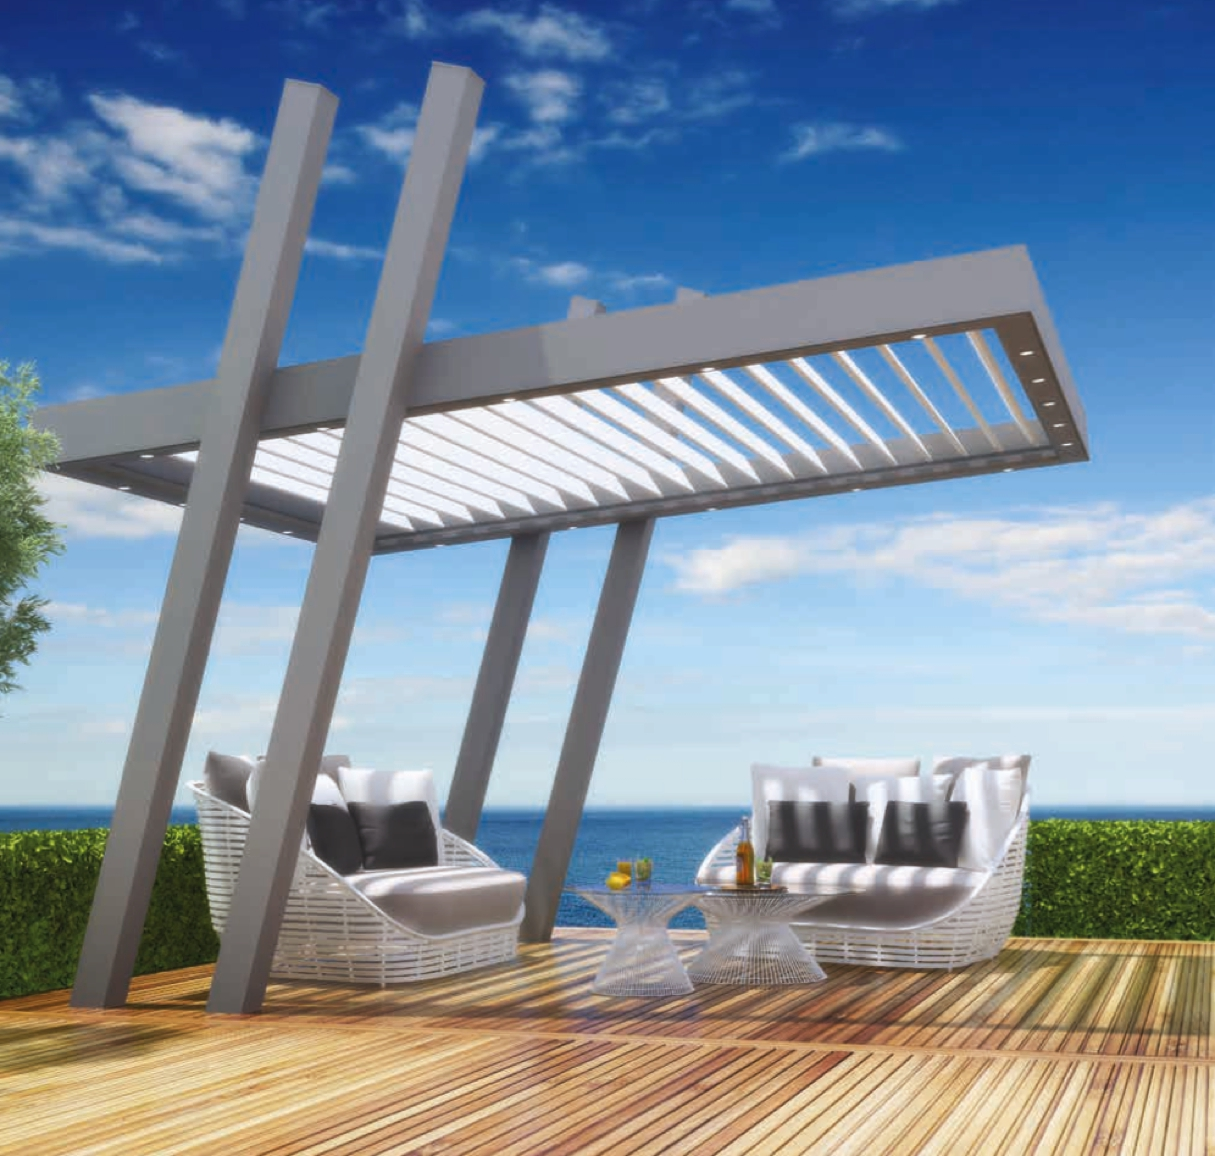 vente de pergola a bonneville installateur de pergola a bonneville fabricant de pergolas a. Black Bedroom Furniture Sets. Home Design Ideas